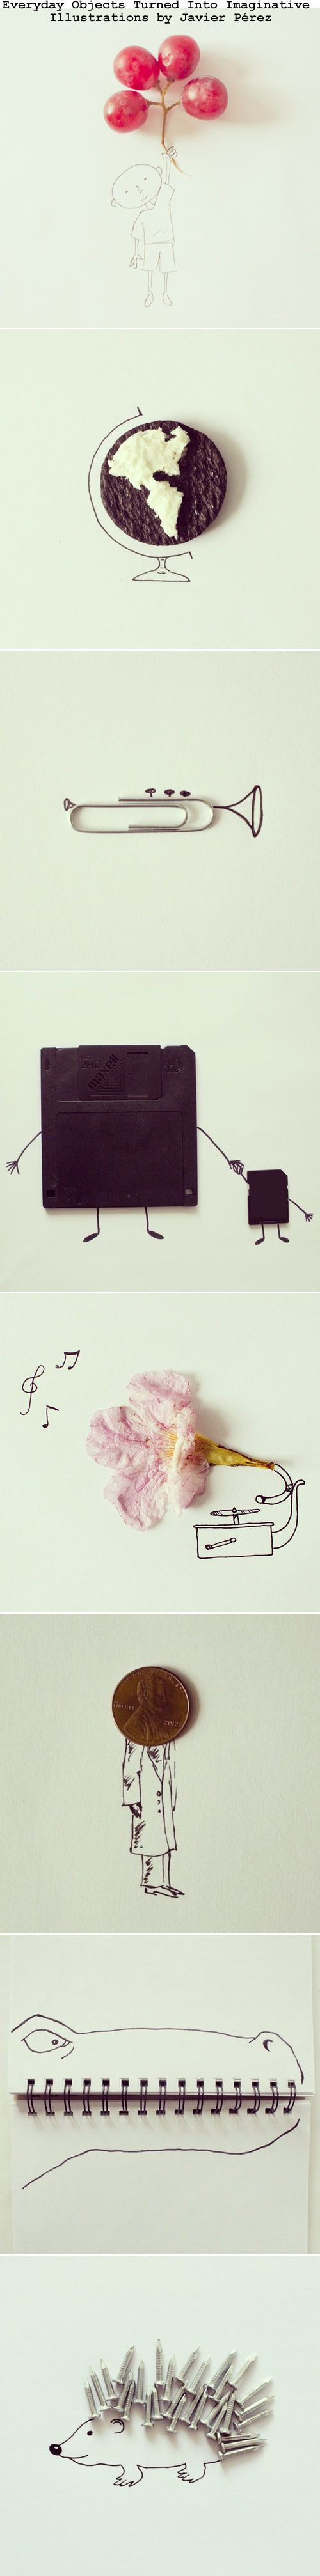 Everyday Objects Turned Into Imaginative Illustrations by Javier Pérez. // :)